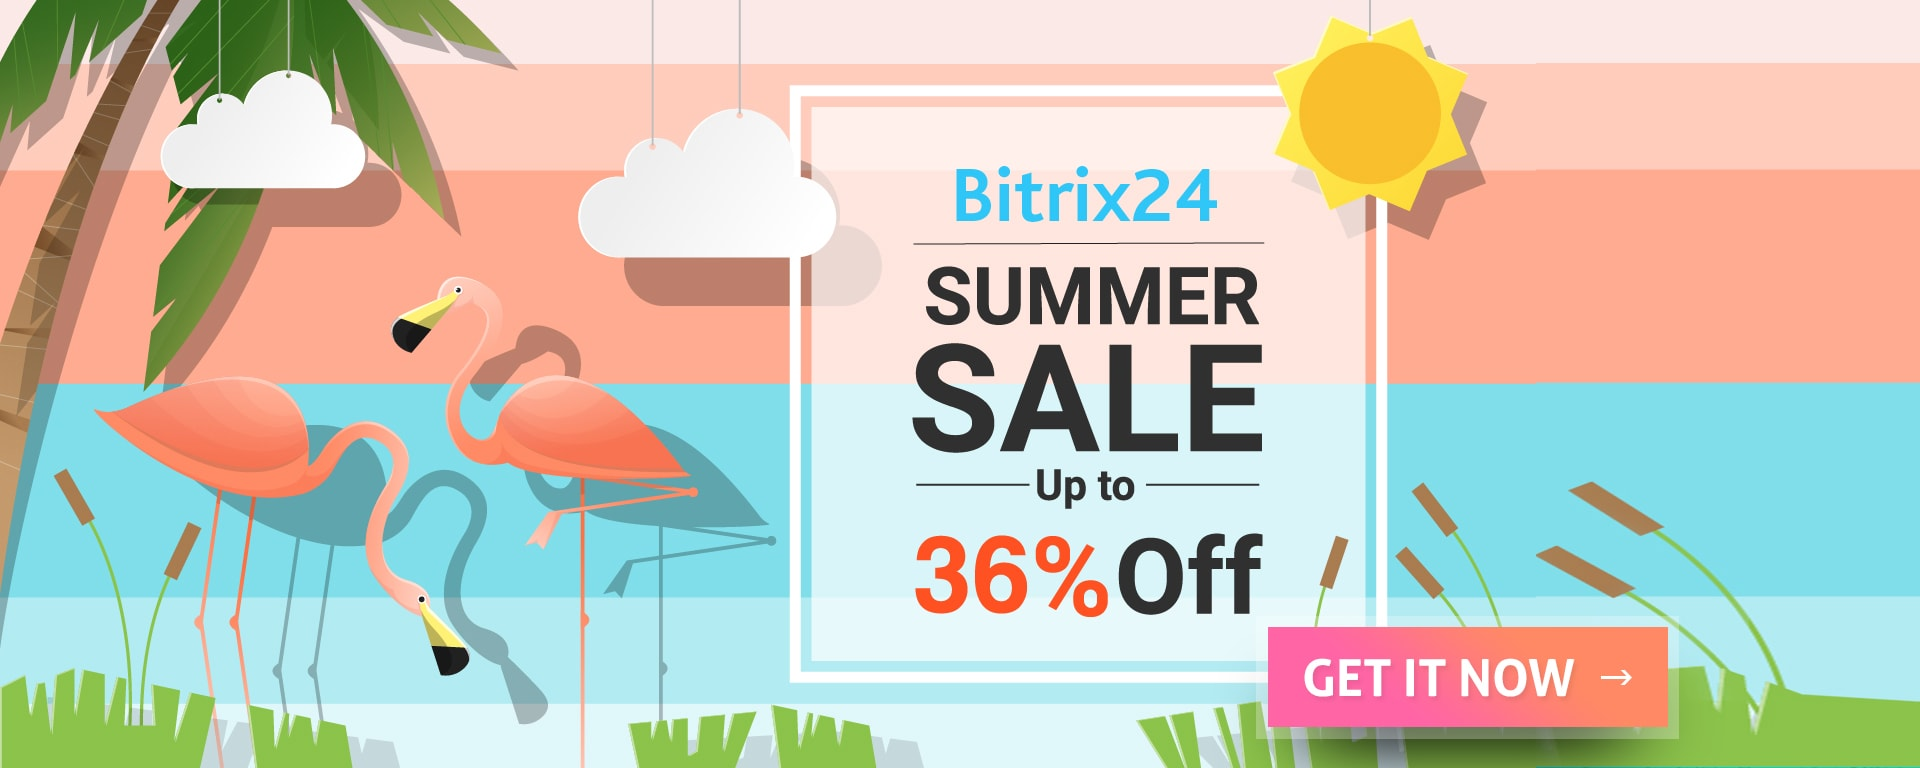 Bitrix24 Summer Sale! Up to 36% Offer! Get it now!